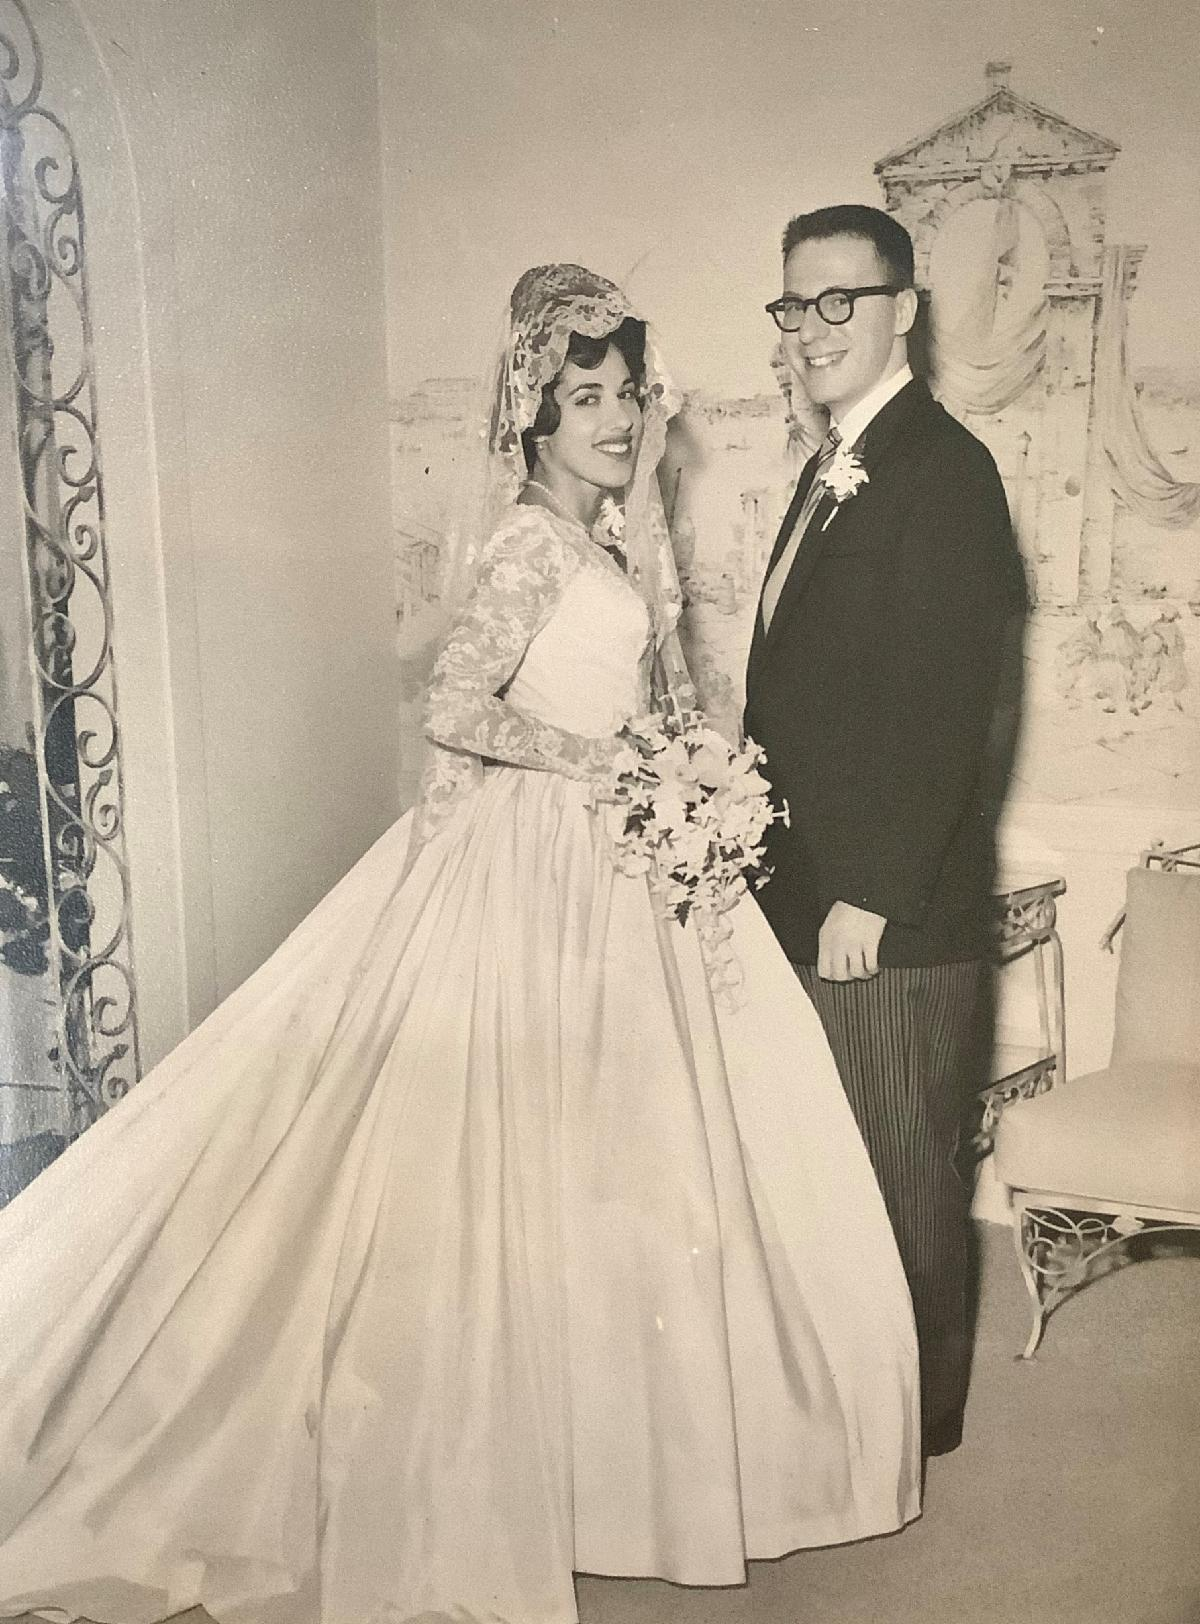 Image: A photo of Saul and Susan Bloostein on their wedding day in September 1961.